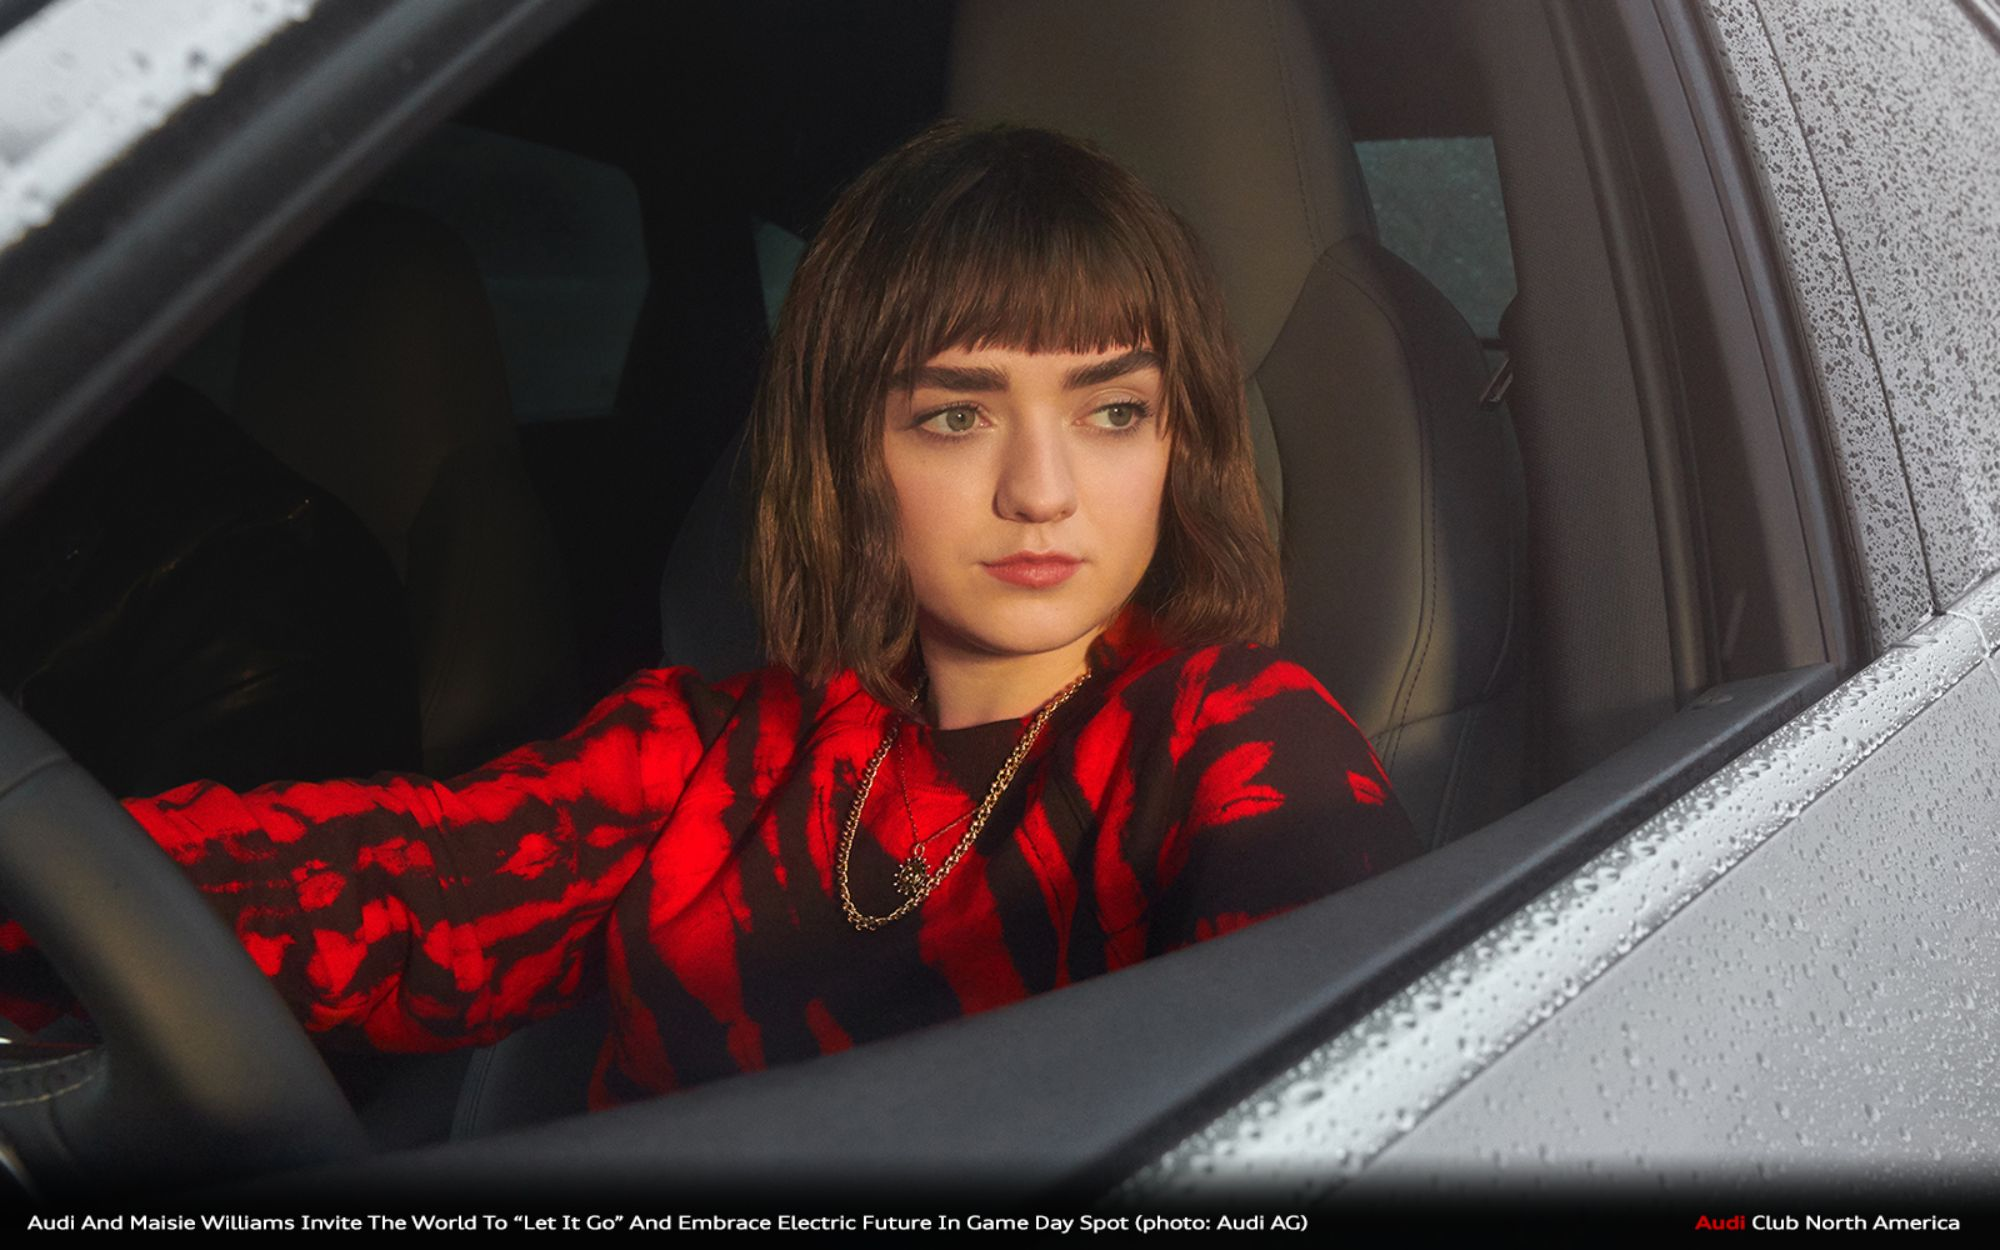 """Audi And Maisie Williams Invite The World To """"Let It Go"""" And Embrace Electric Future In Game Day Spot"""